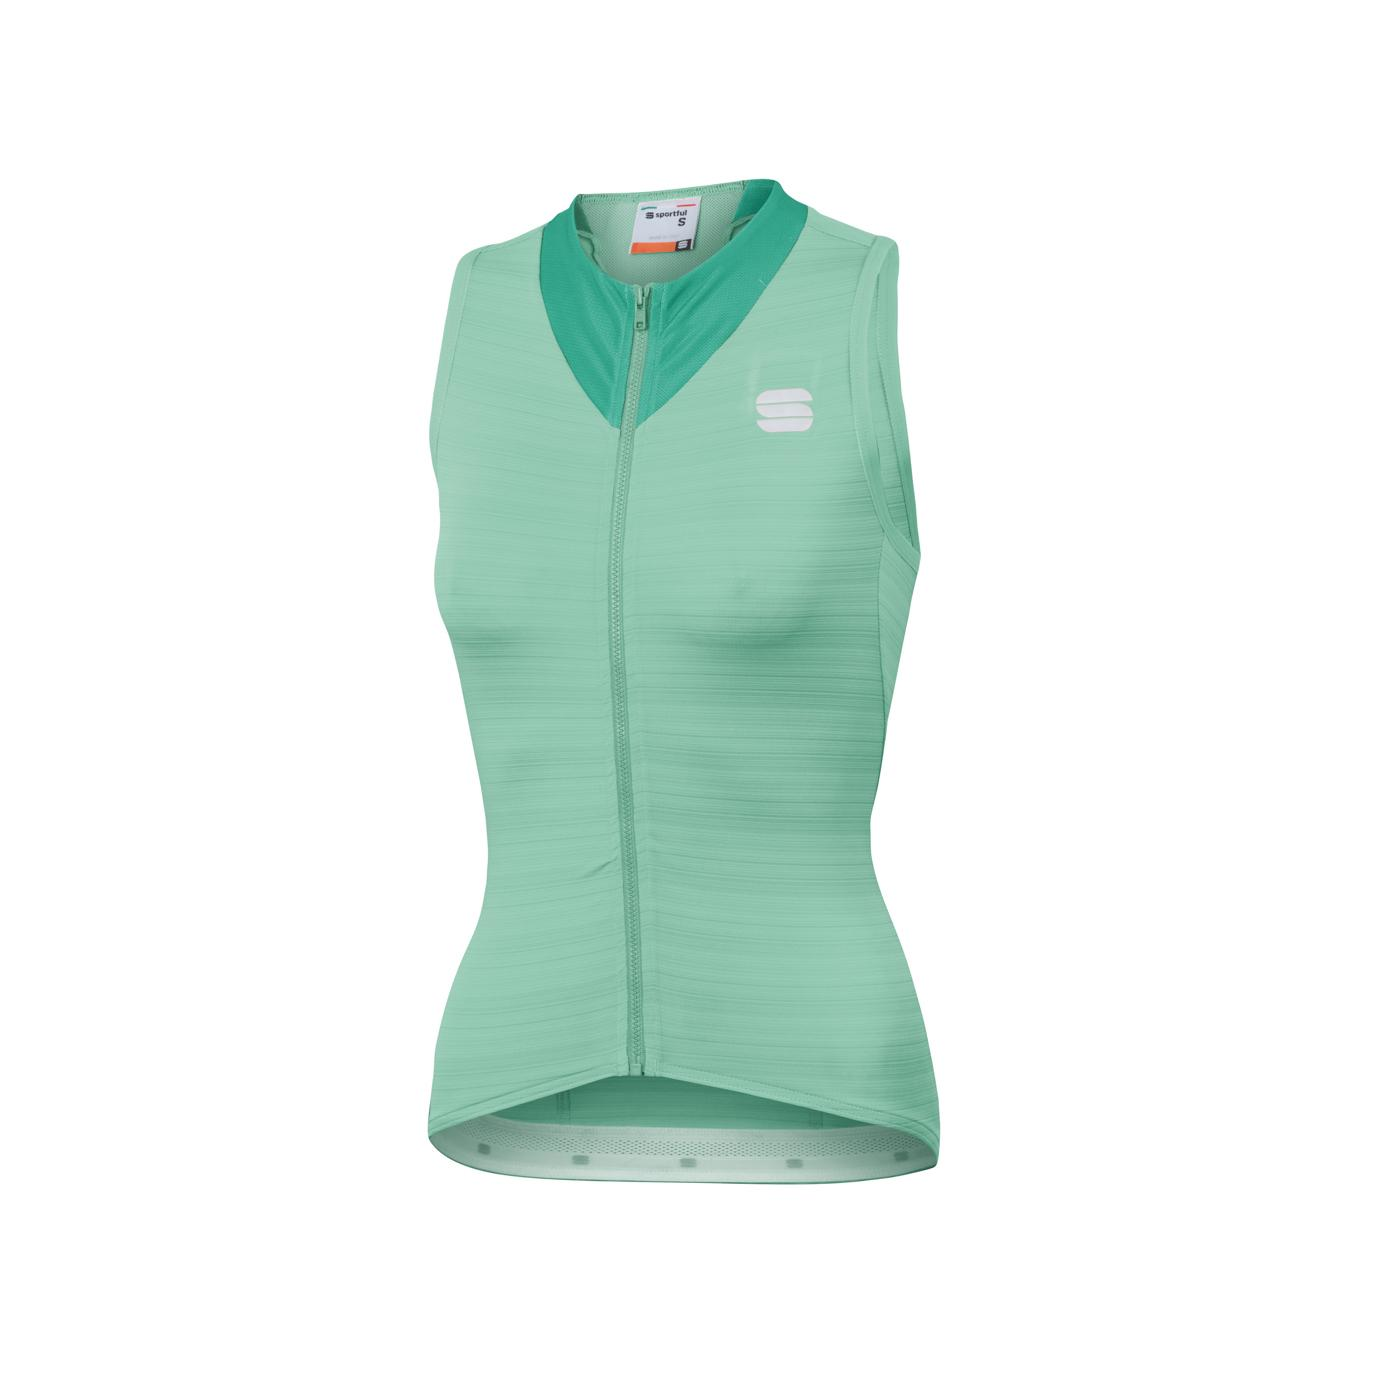 Sportful Fietsshirt Mouwloos voor Dames Groen - SF Kelly W Sleeveless Jersey-Acqua Green